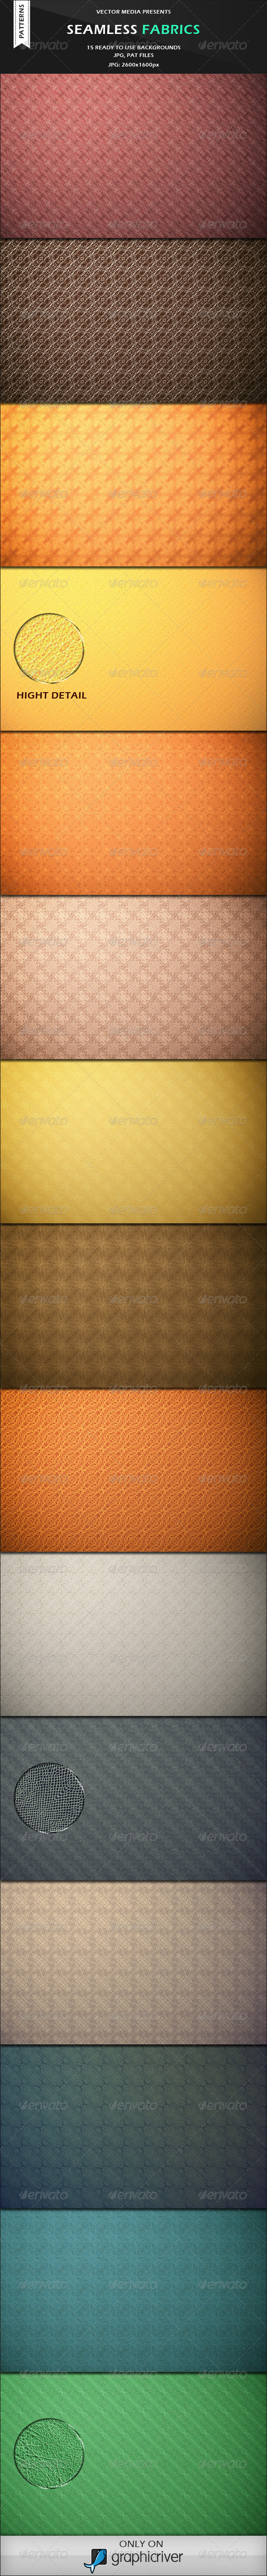 Seamless Fabrics - Photoshop Patterns - Textures / Fills / Patterns Photoshop